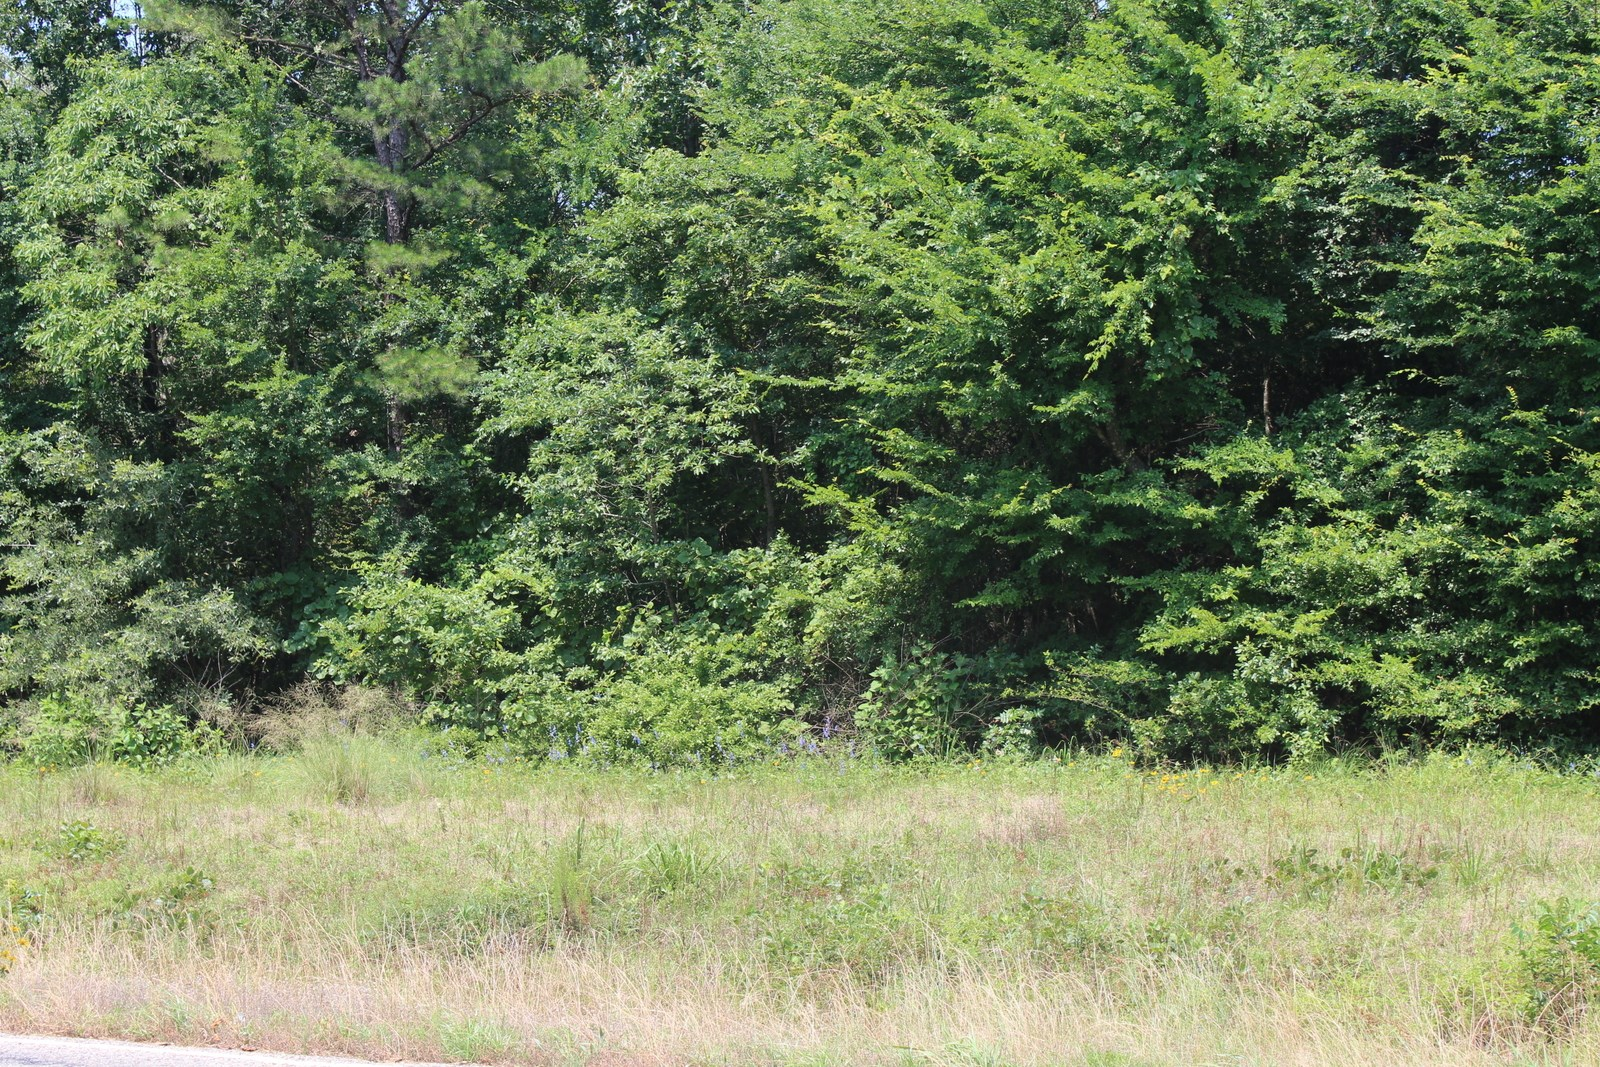 5 EAST TEXAS ACRES - NO RESTRICTIONS - WOOD COUNTY, TX